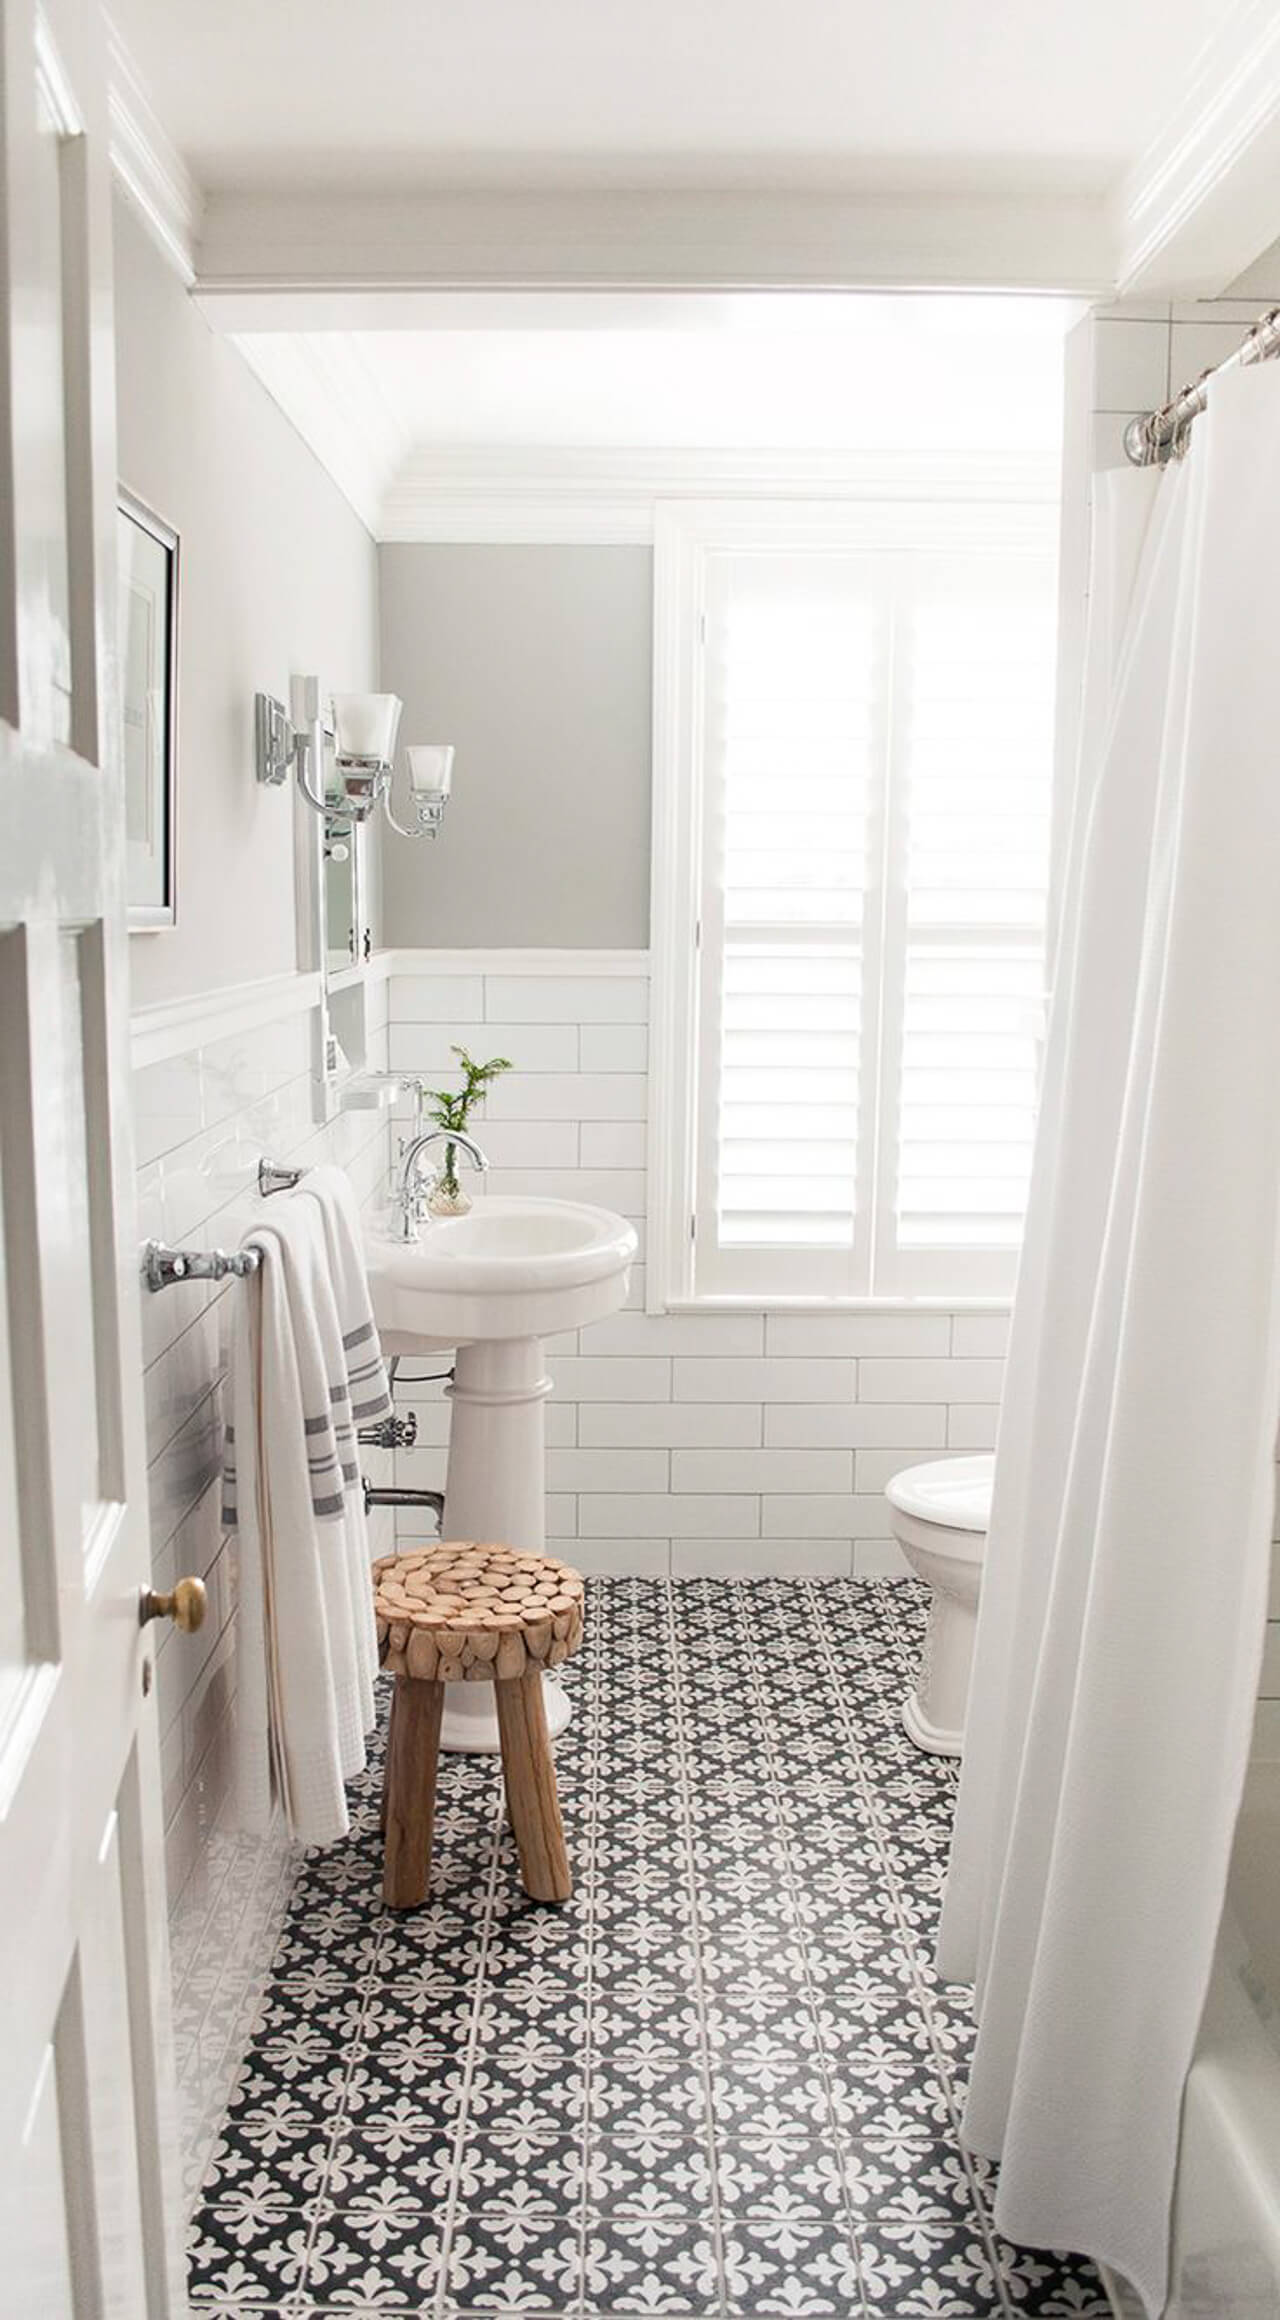 Such a simple and clean white and black bathroom design. - M Loves M @marmar